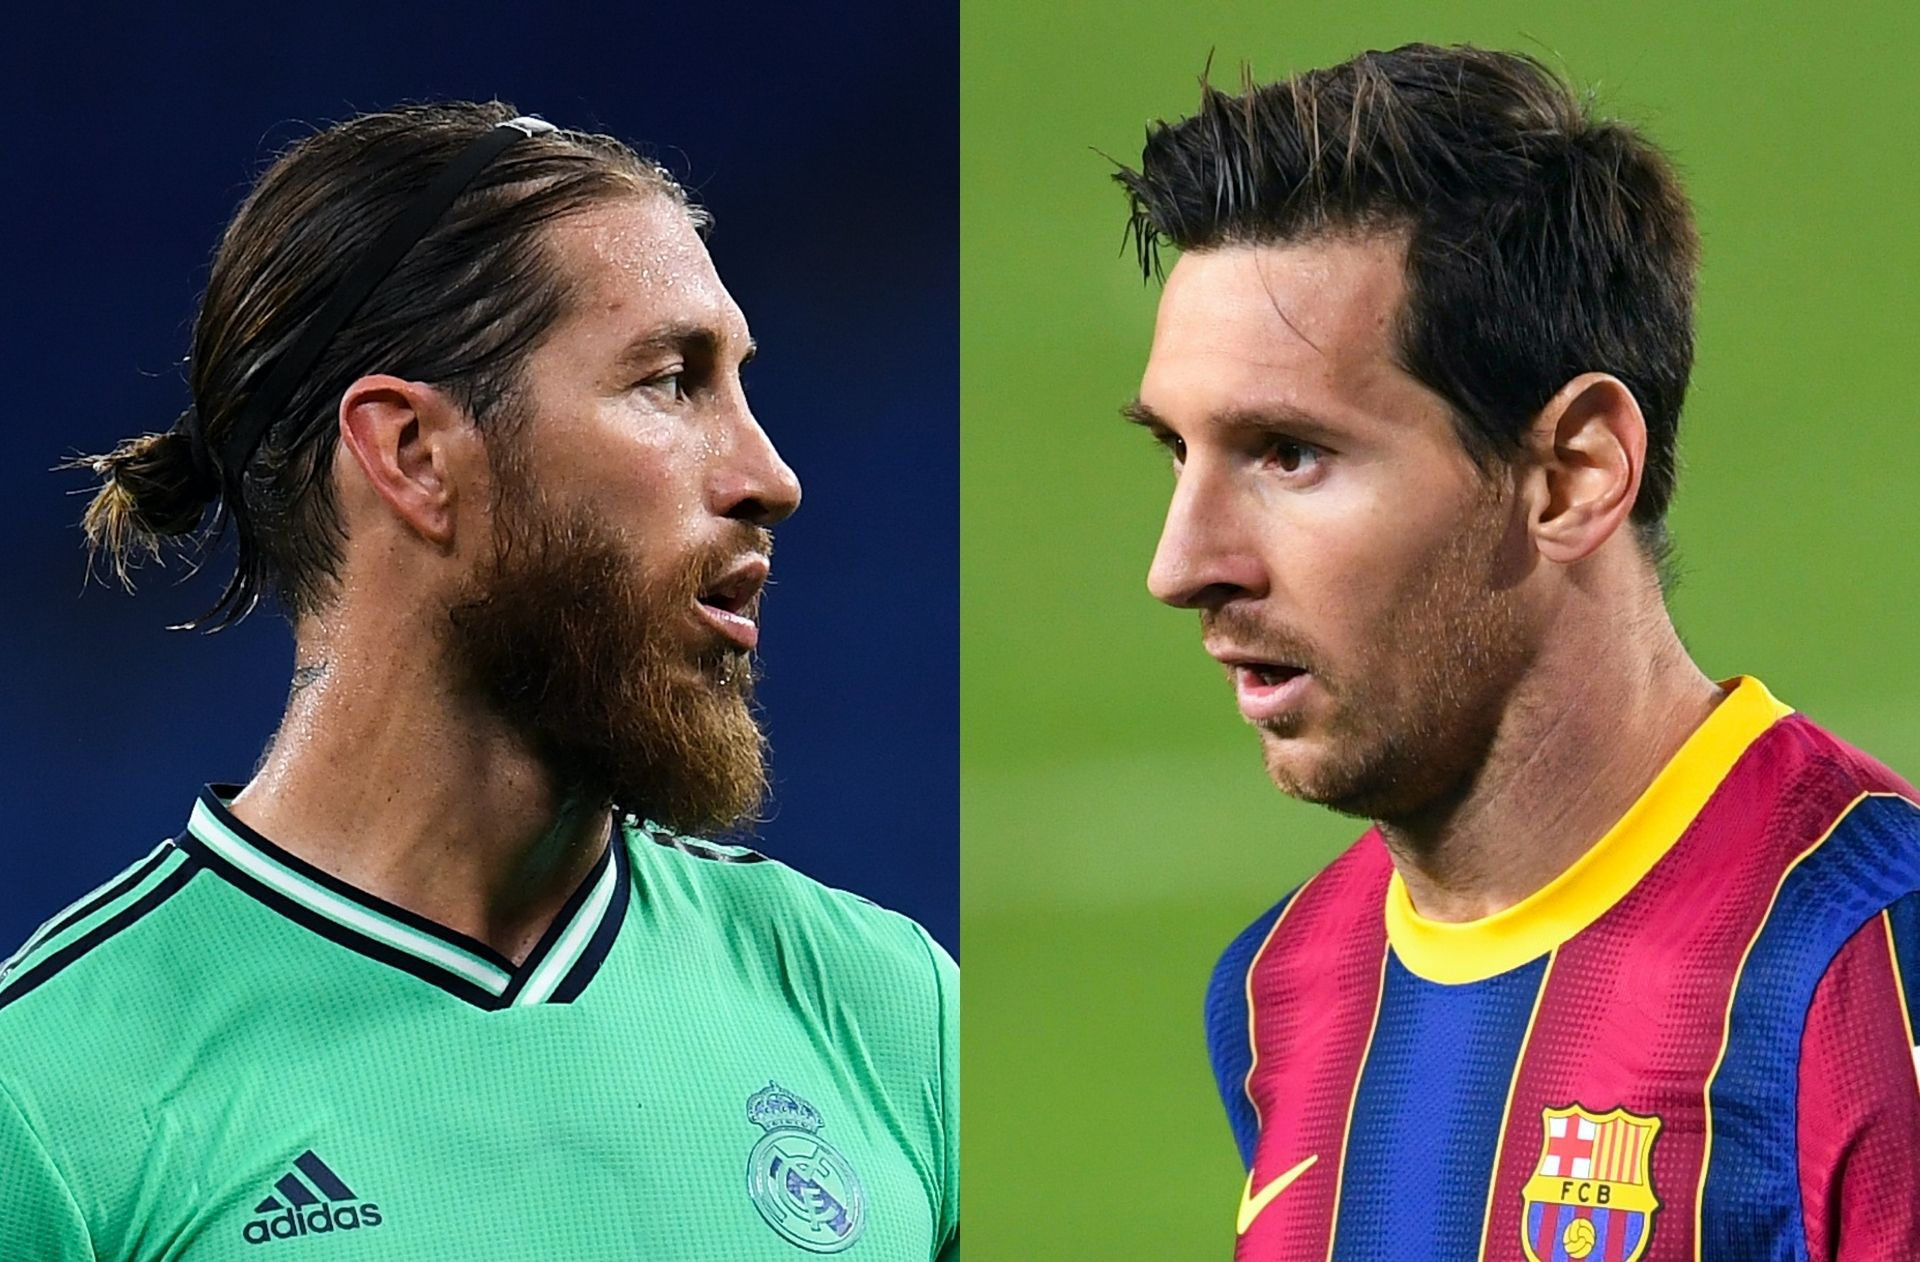 Tuesday's transfer rumors - Ramos & Messi to unite at Man City?